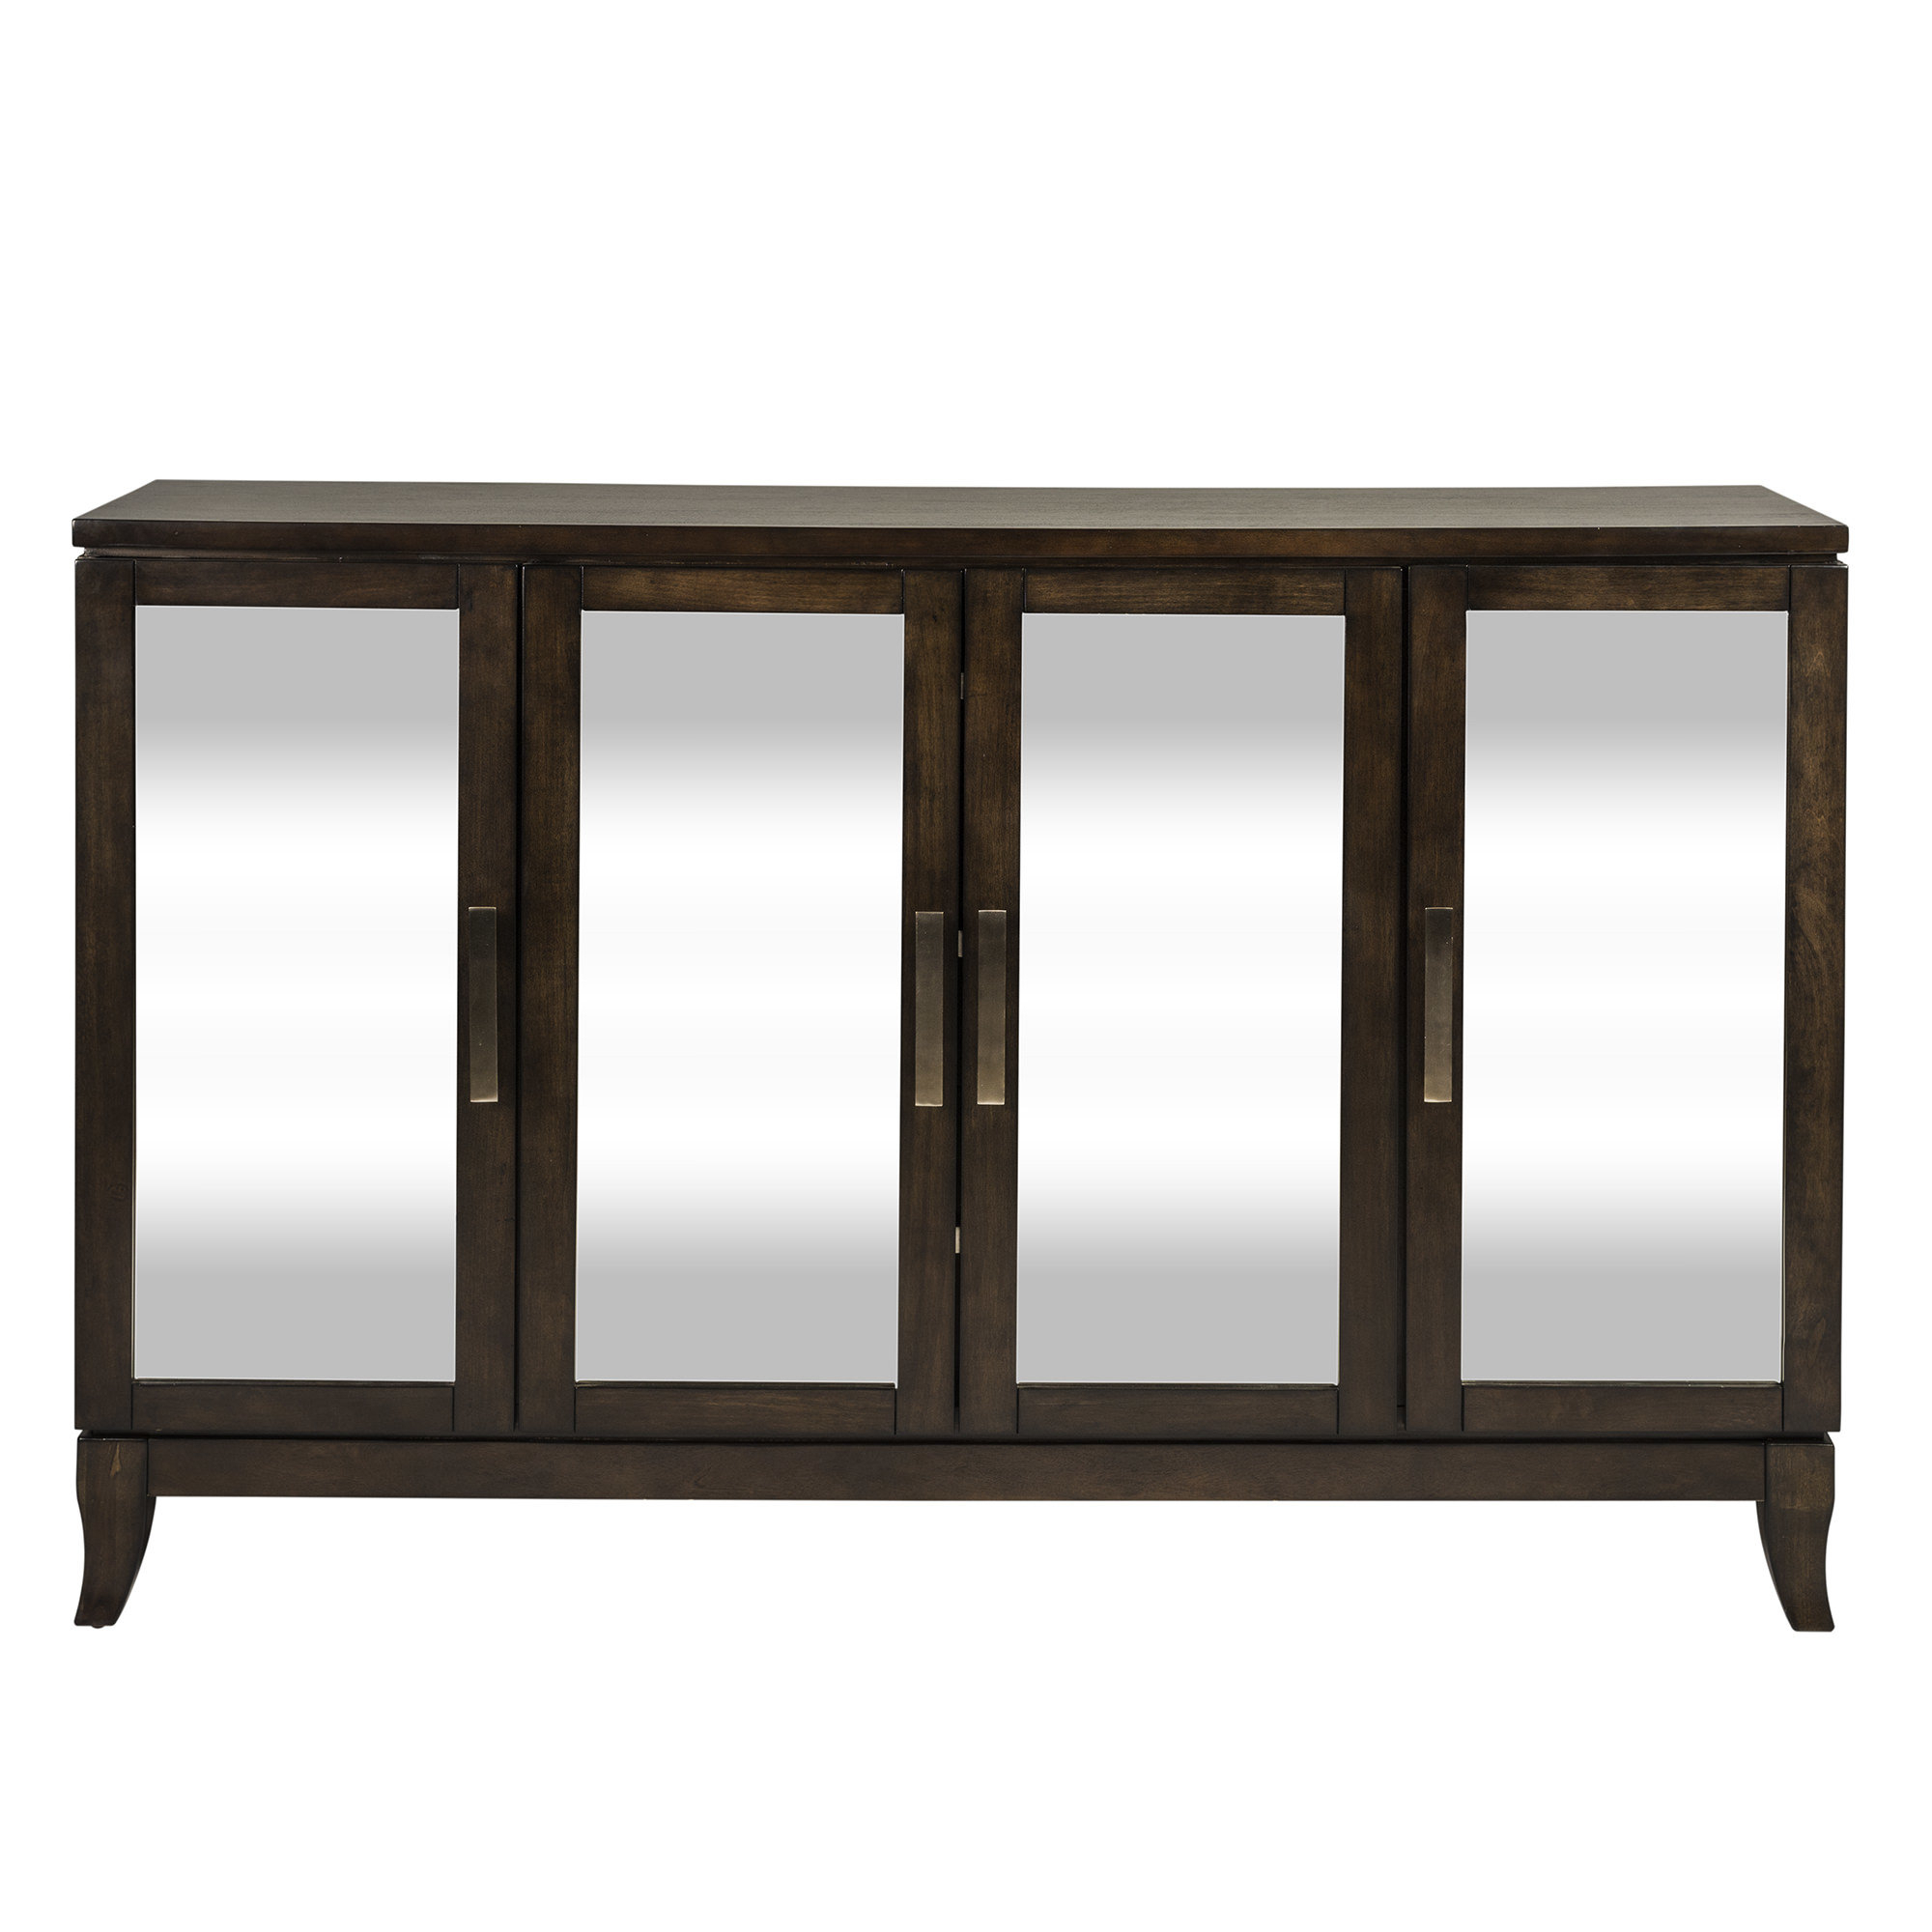 Willa Arlo Interiors Borel Sideboard For Well Known Chaffins Sideboards (Gallery 16 of 20)